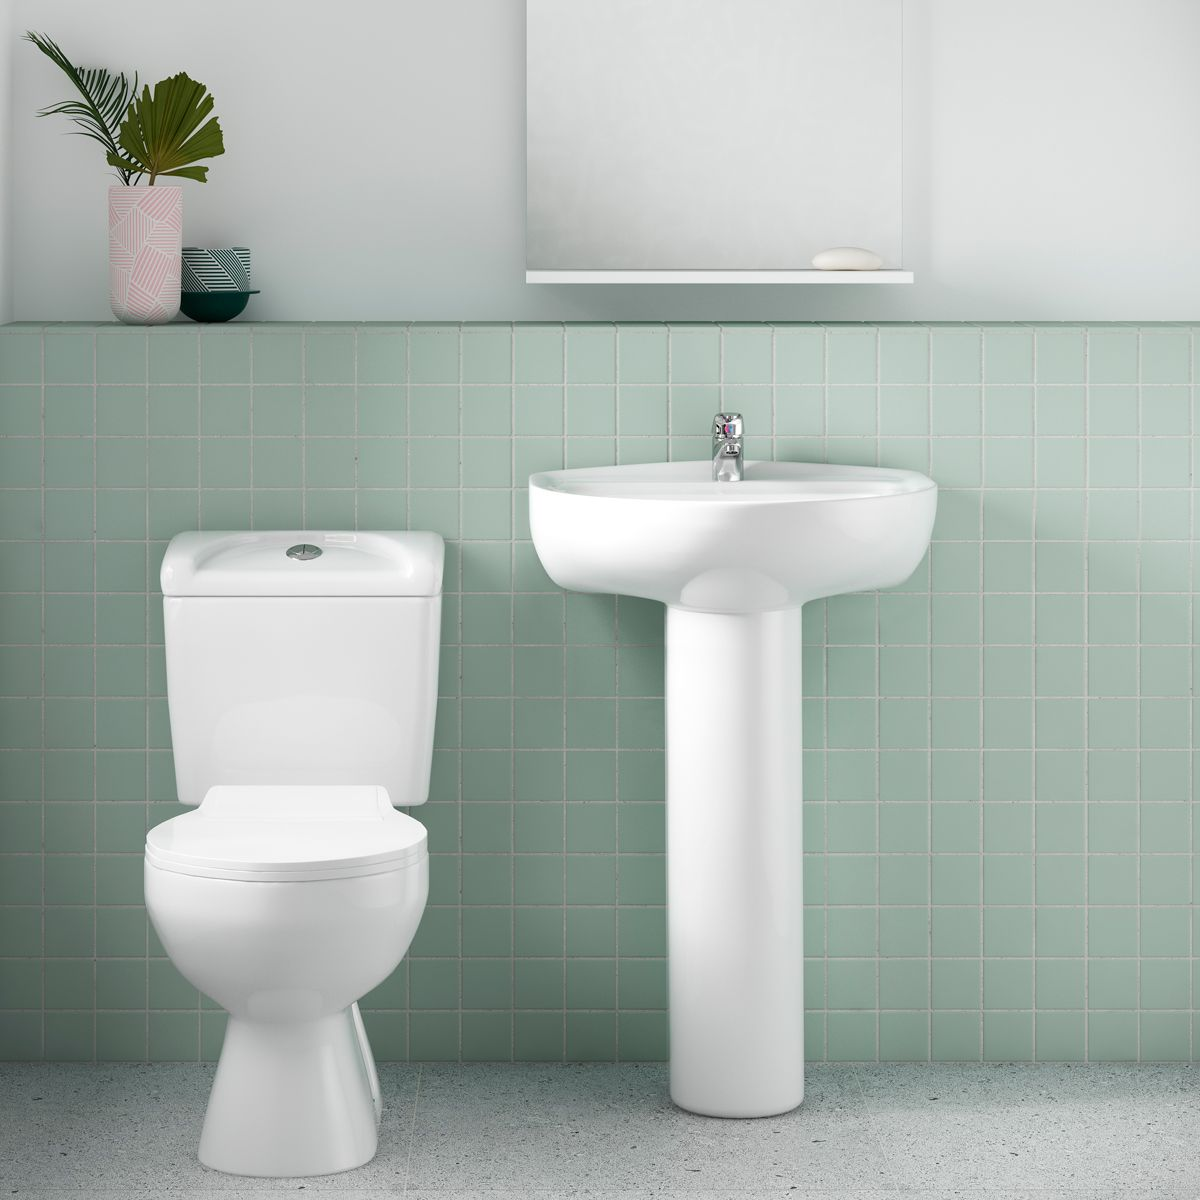 Nuie Melbourne Toilet and Basin Set